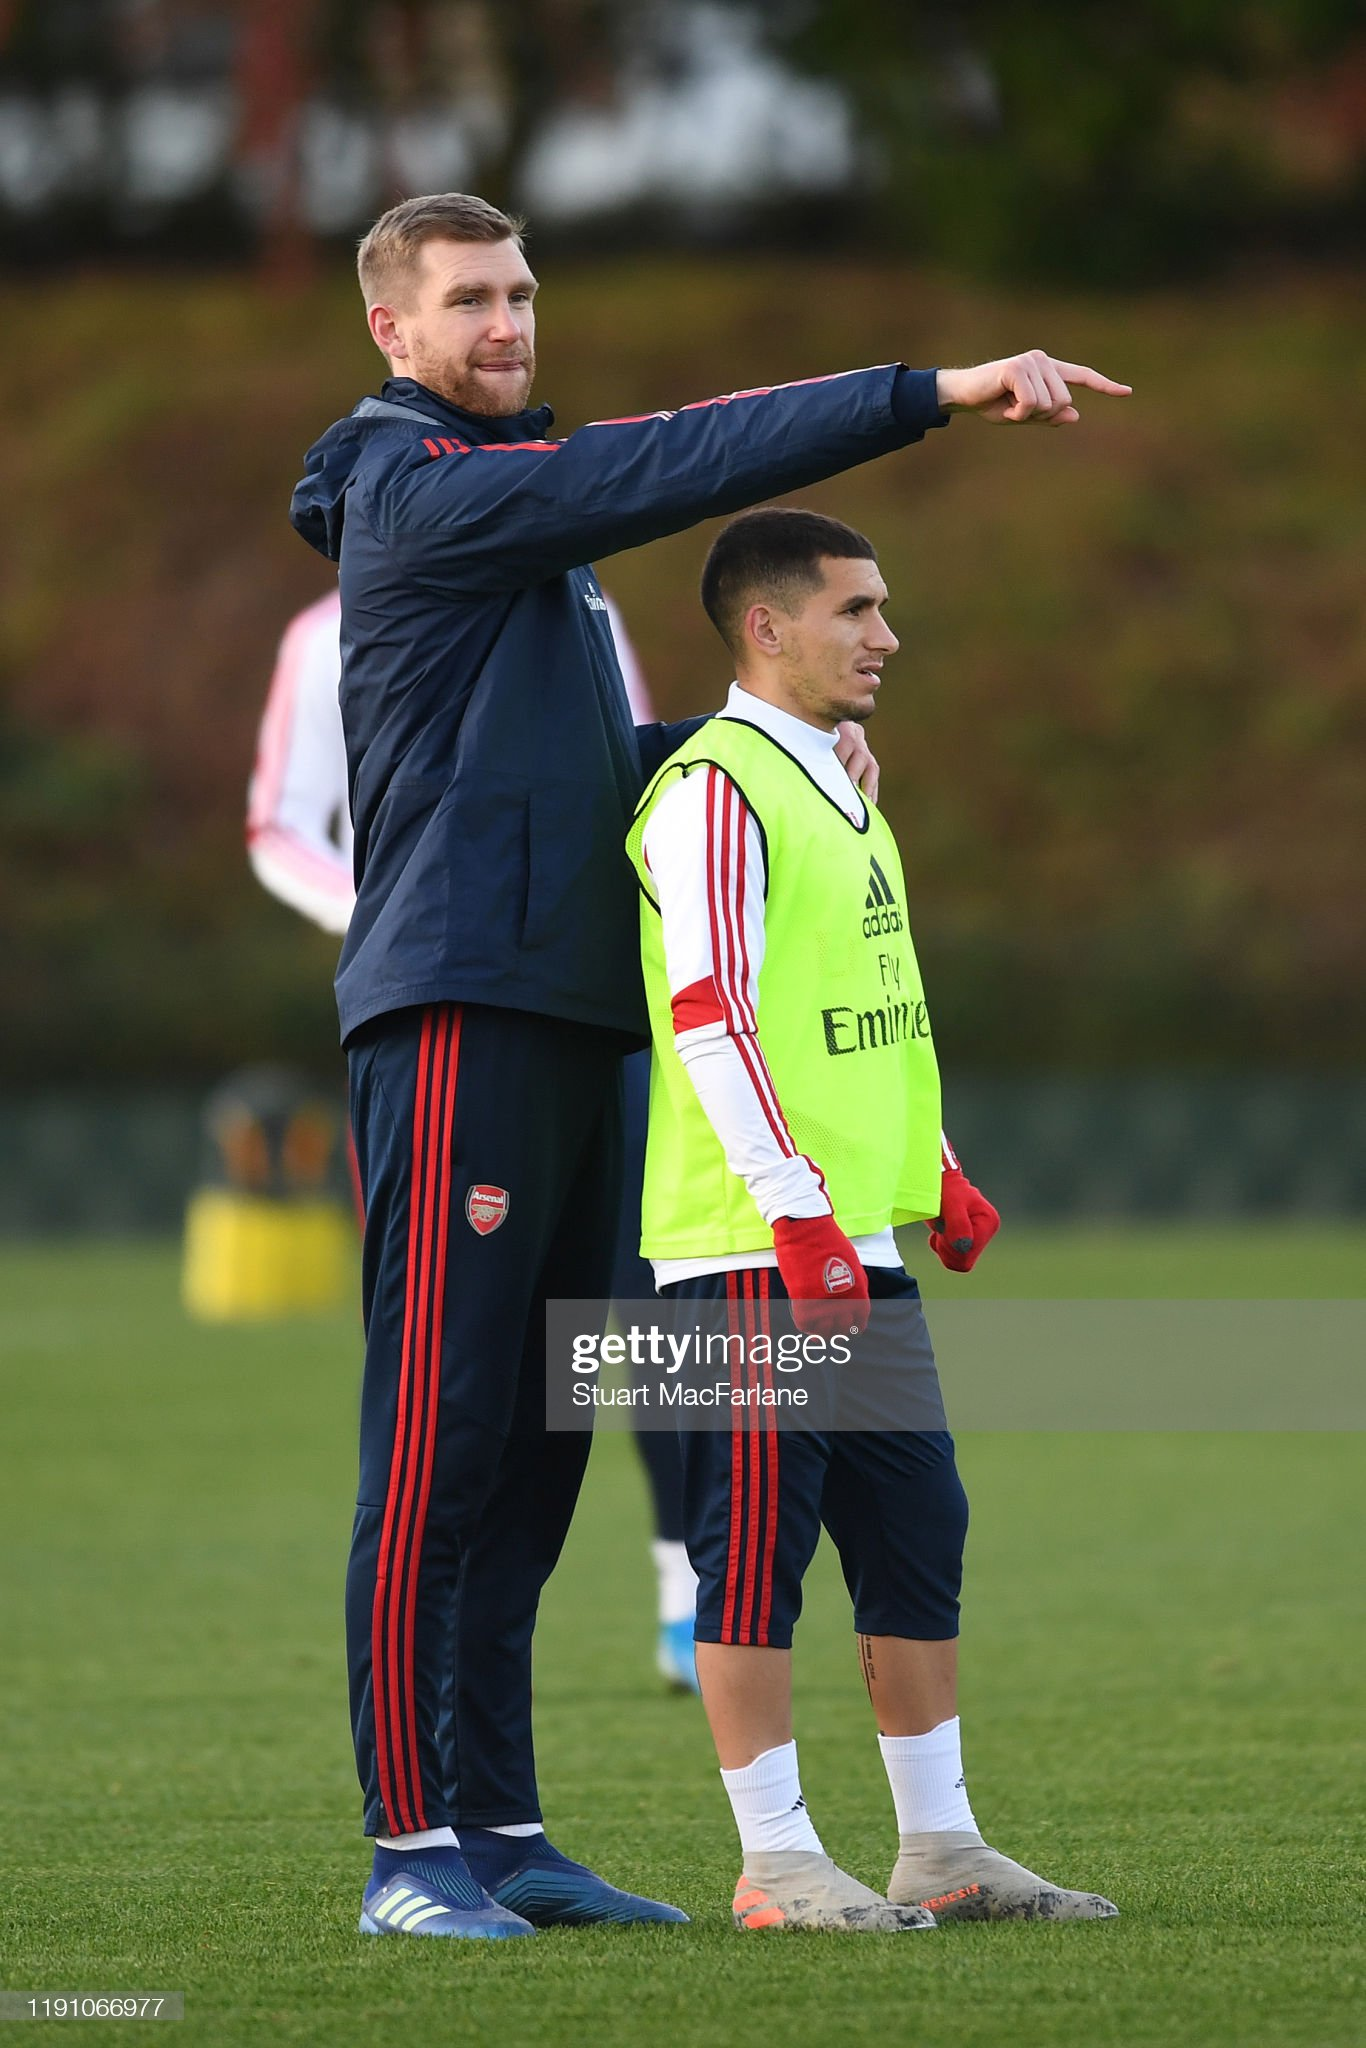 ¿Cuánto mide Per Mertesacker? - Altura - Real height Arsenal-academy-director-per-mertesacker-with-lucas-torreira-during-a-picture-id1191066977?s=2048x2048